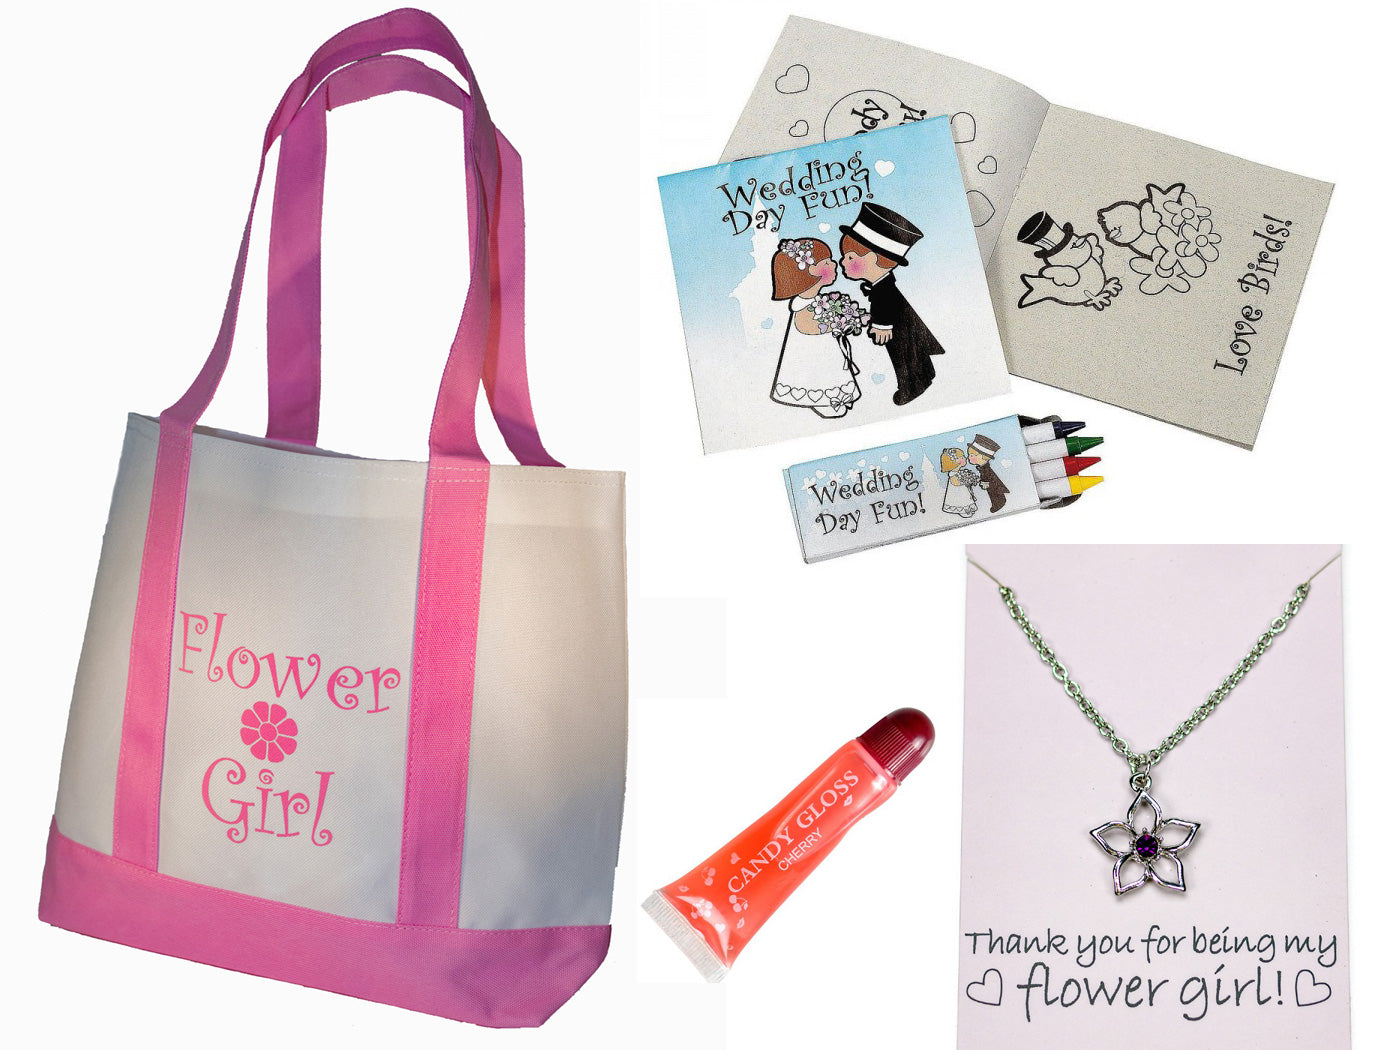 Flower Girl Gifts Set: Tote Bag, Metal Flower Girl Necklace, Lip Gloss, Wedding Day Kids Activity Kits